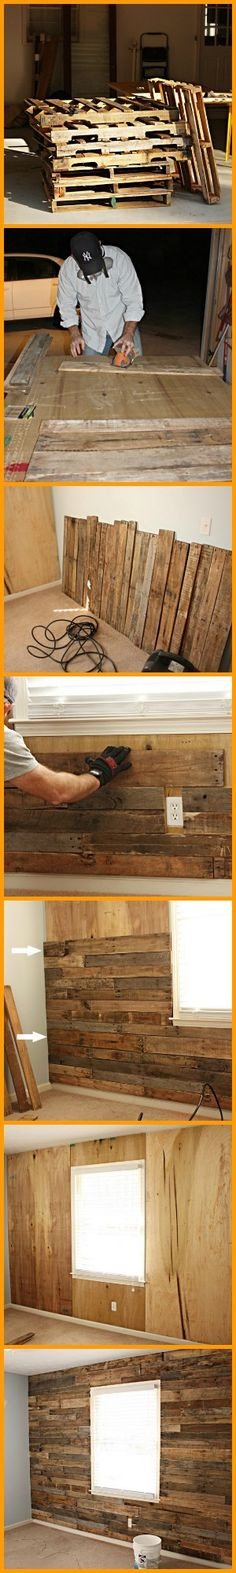 Yes! It's possible to make an accent wall without having to spend a lot. See for yourself in this project. http://theownerbuildernetwork.co/8ayf